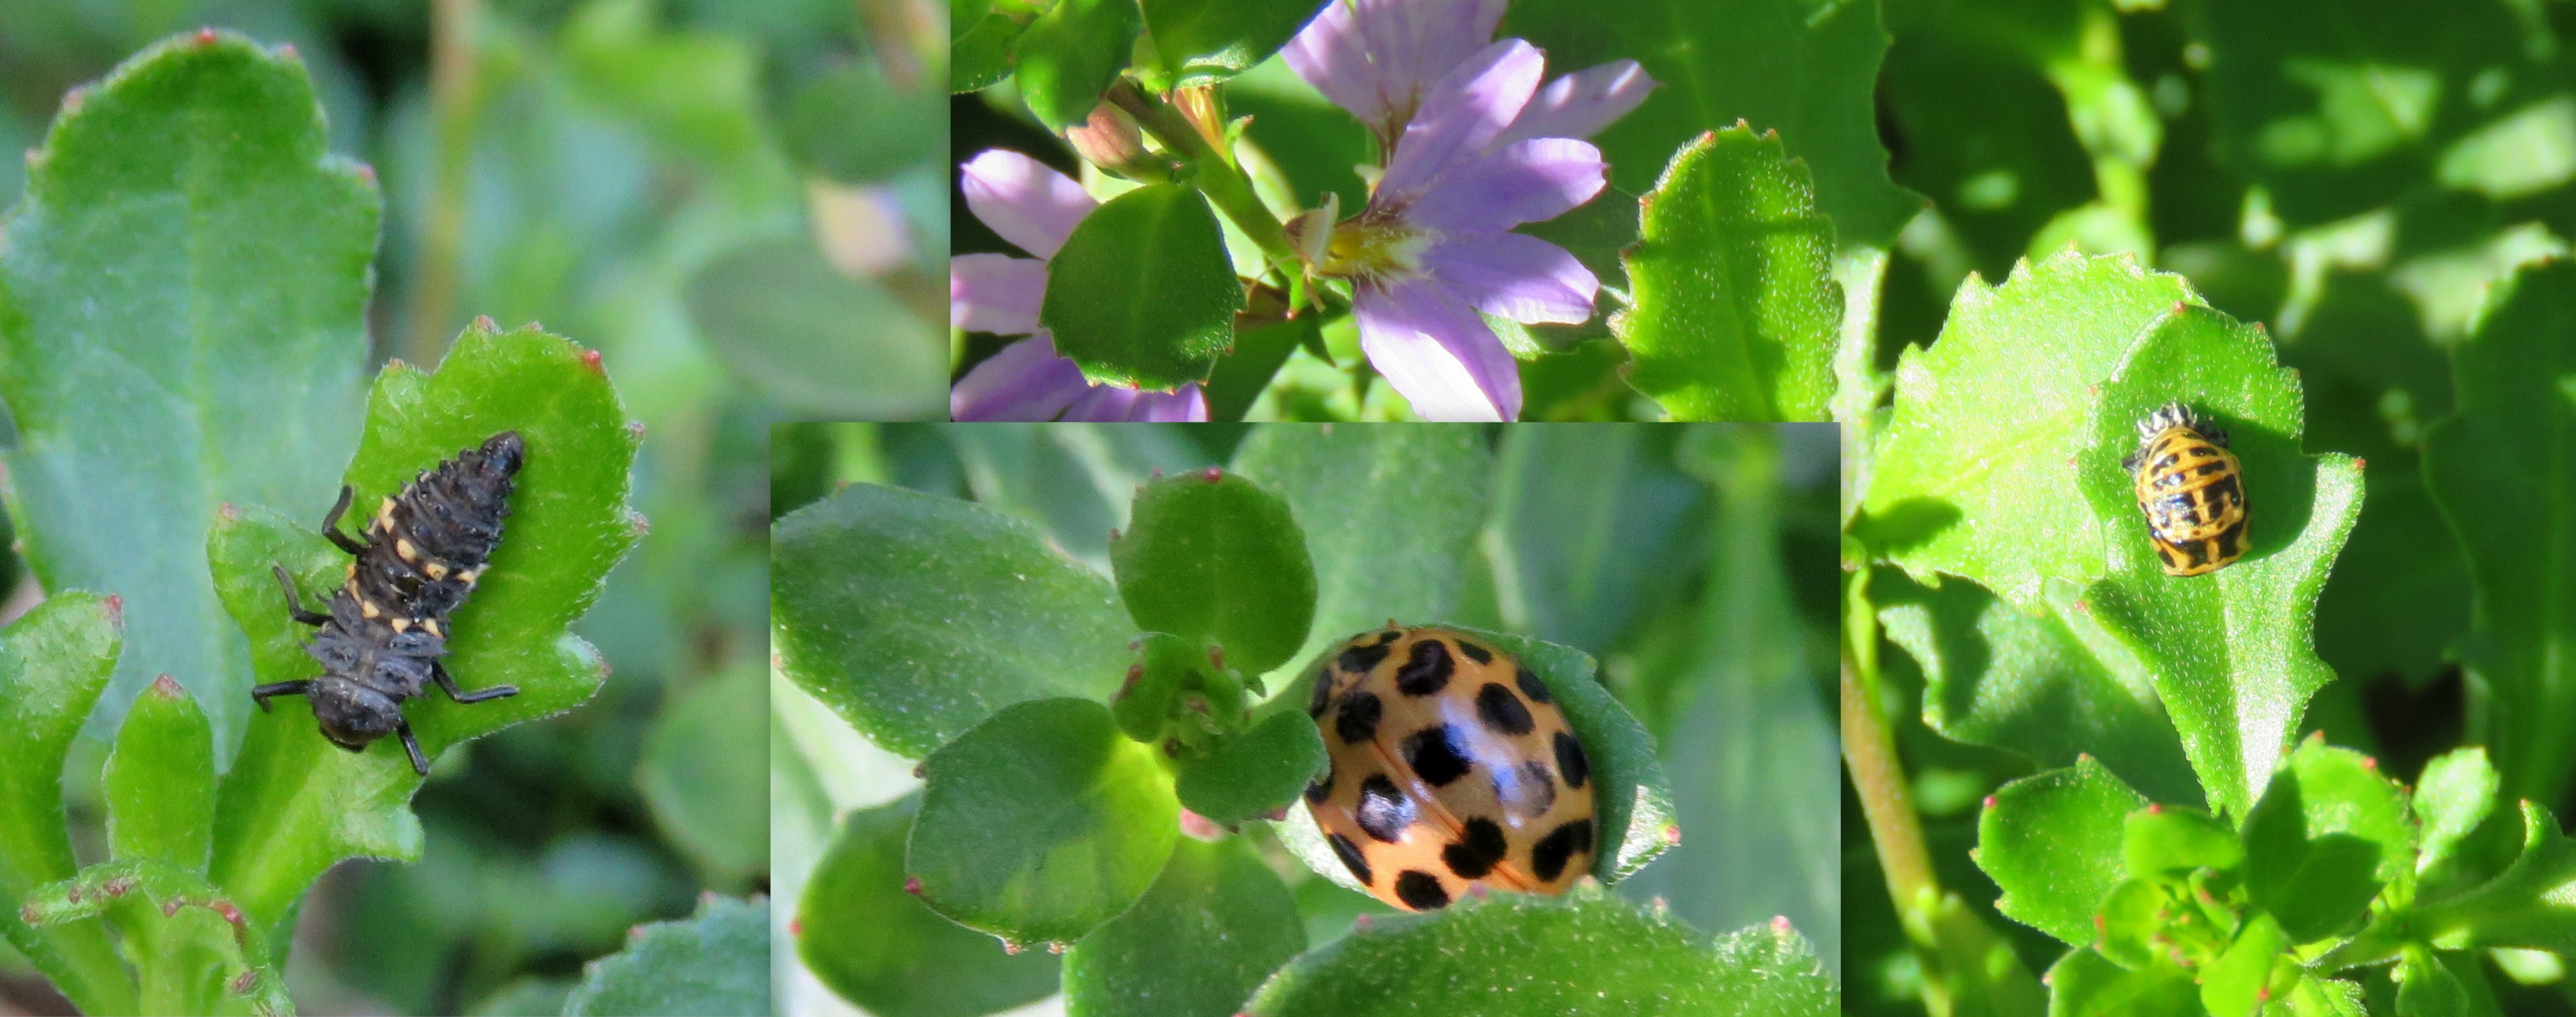 Common Spotted Ladybird - life stages - 20 July 2019